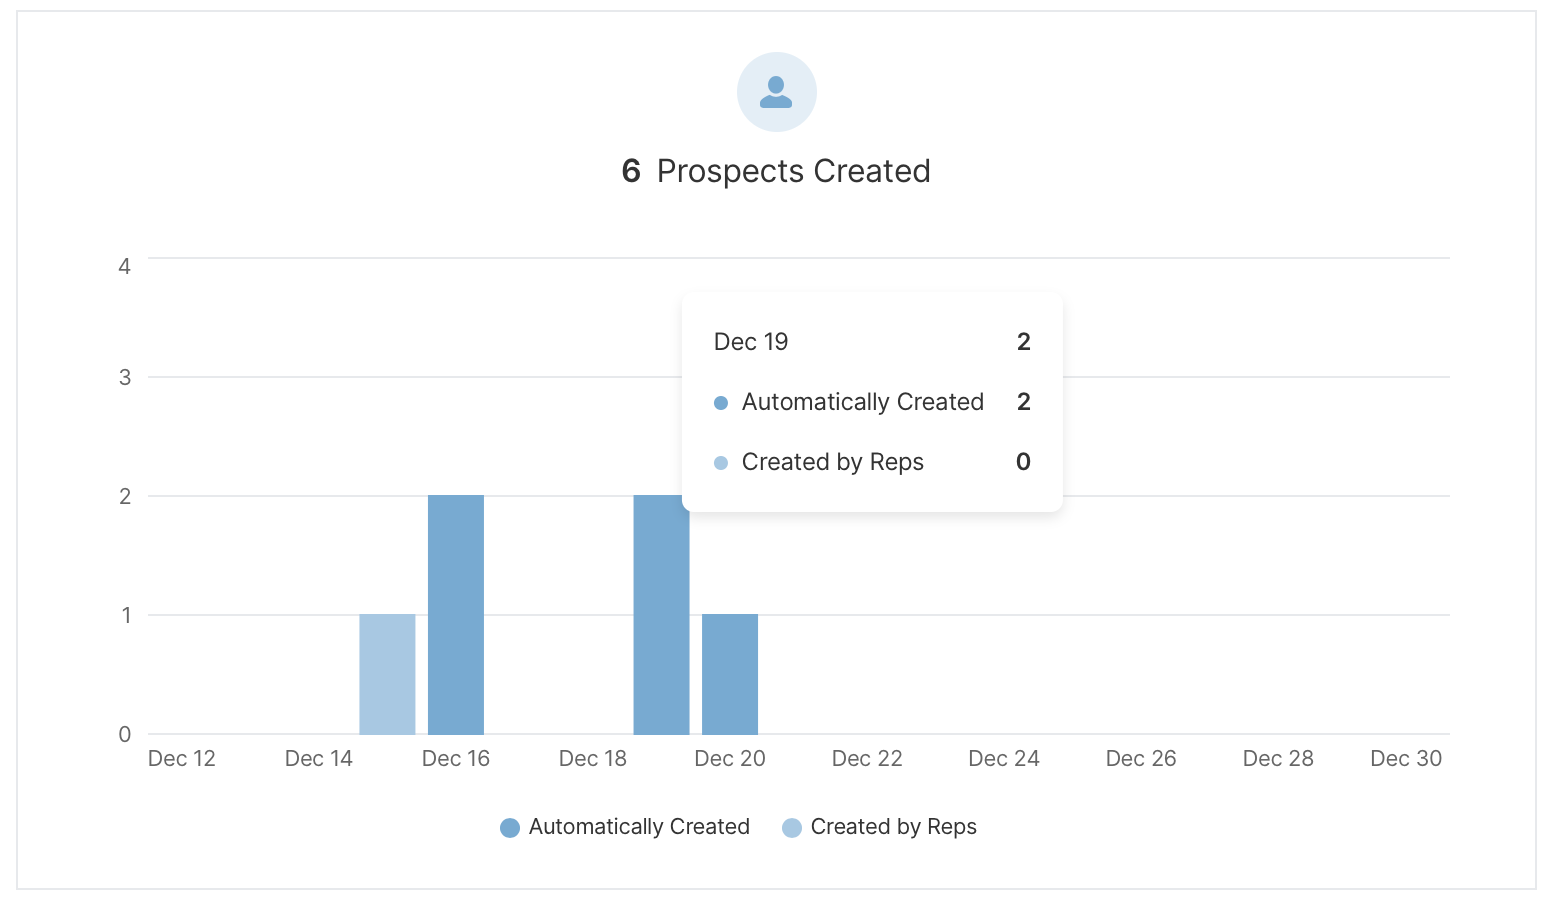 Bar chart displaying the number of prospects created, broken down between automatically created and created by reps.